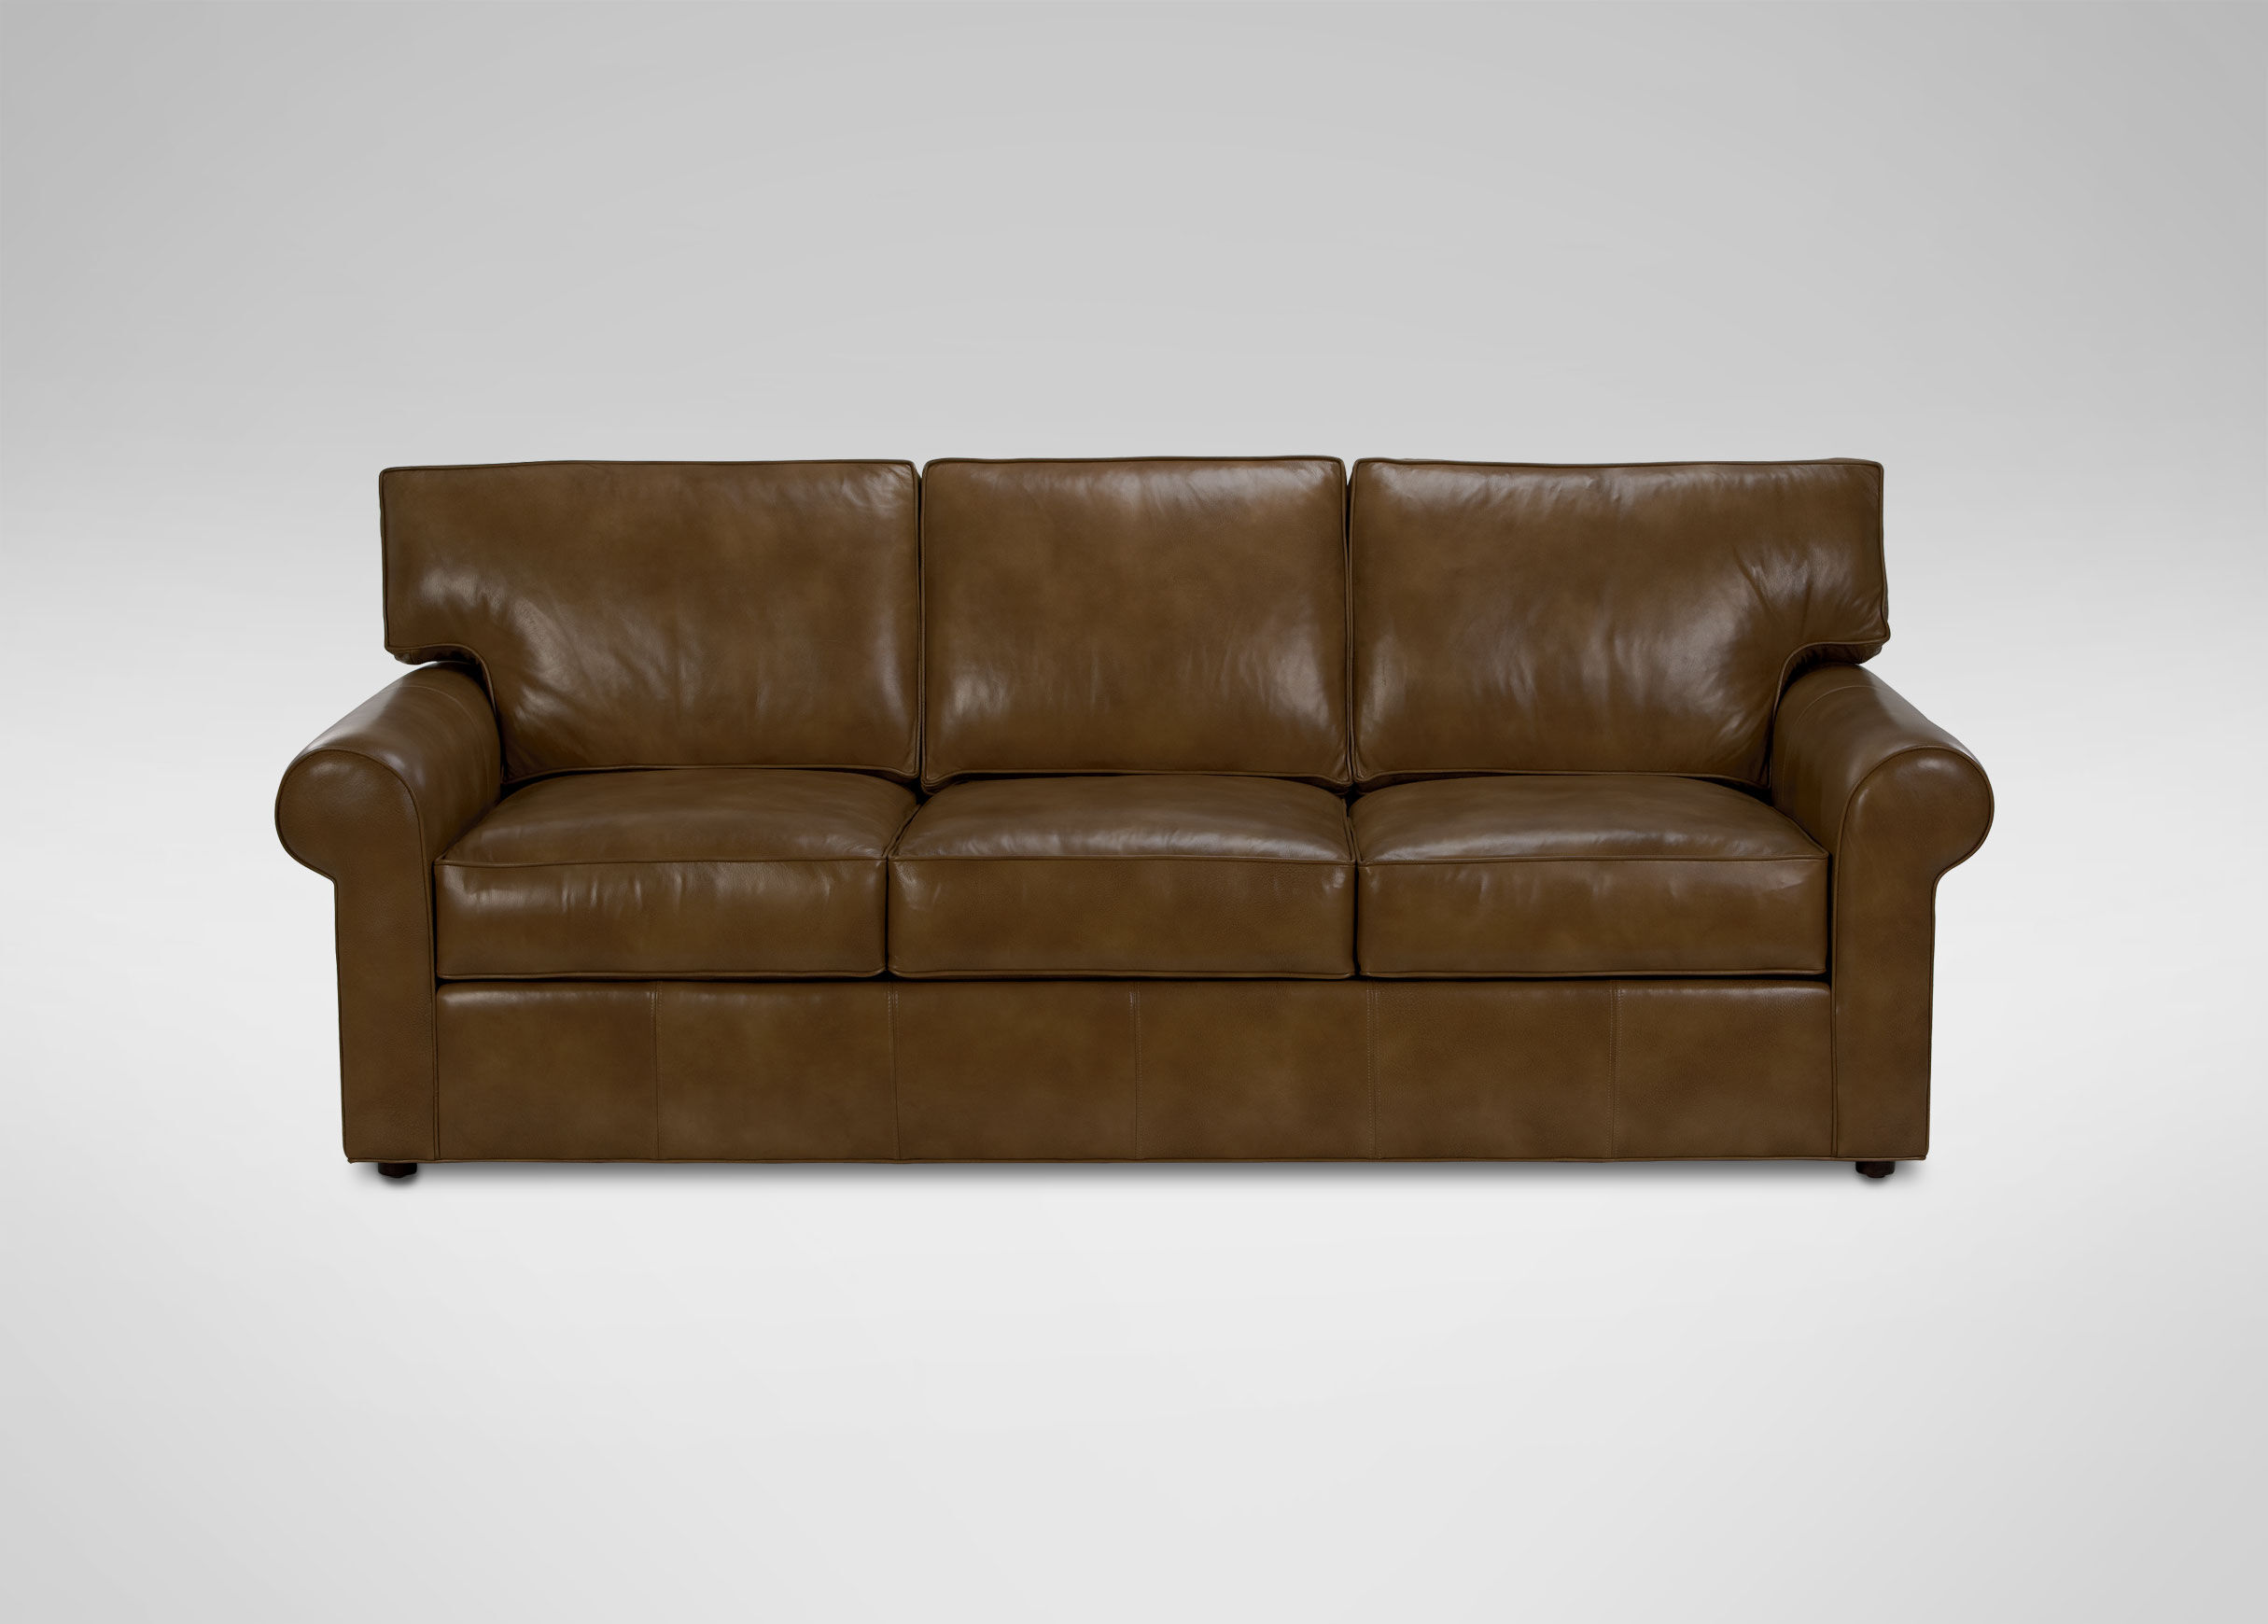 roll arm sofa canada ravenna leather euro lounger bed in brown retreat sofas and loveseats